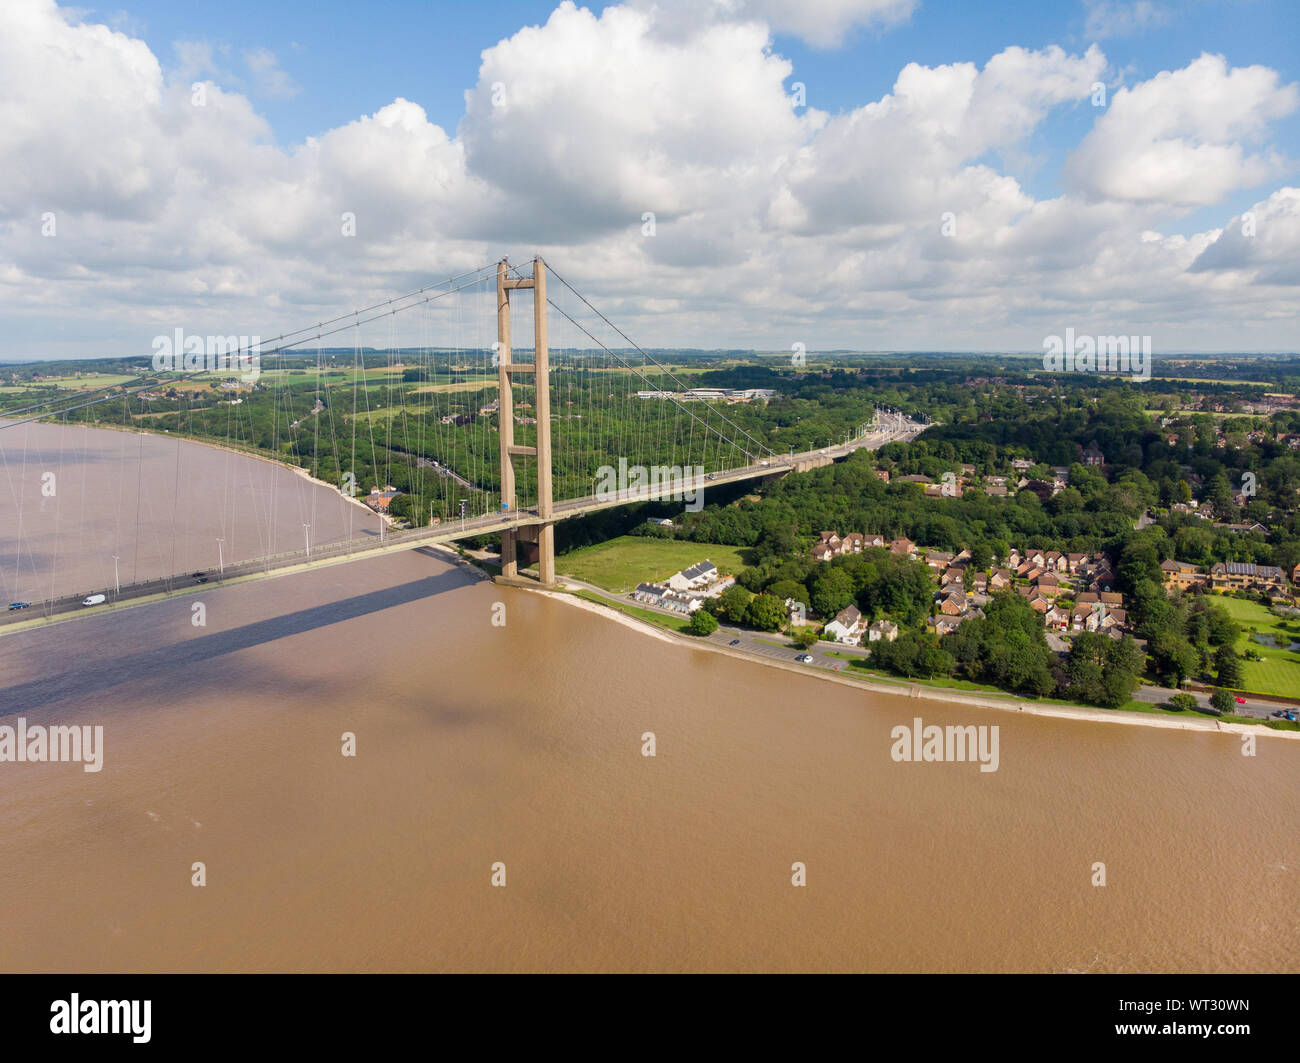 Wide photo of The Humber Bridge, near Kingston upon Hull, East Riding of Yorkshire, England, single-span road suspension bridge, taken on a sunny day Stock Photo